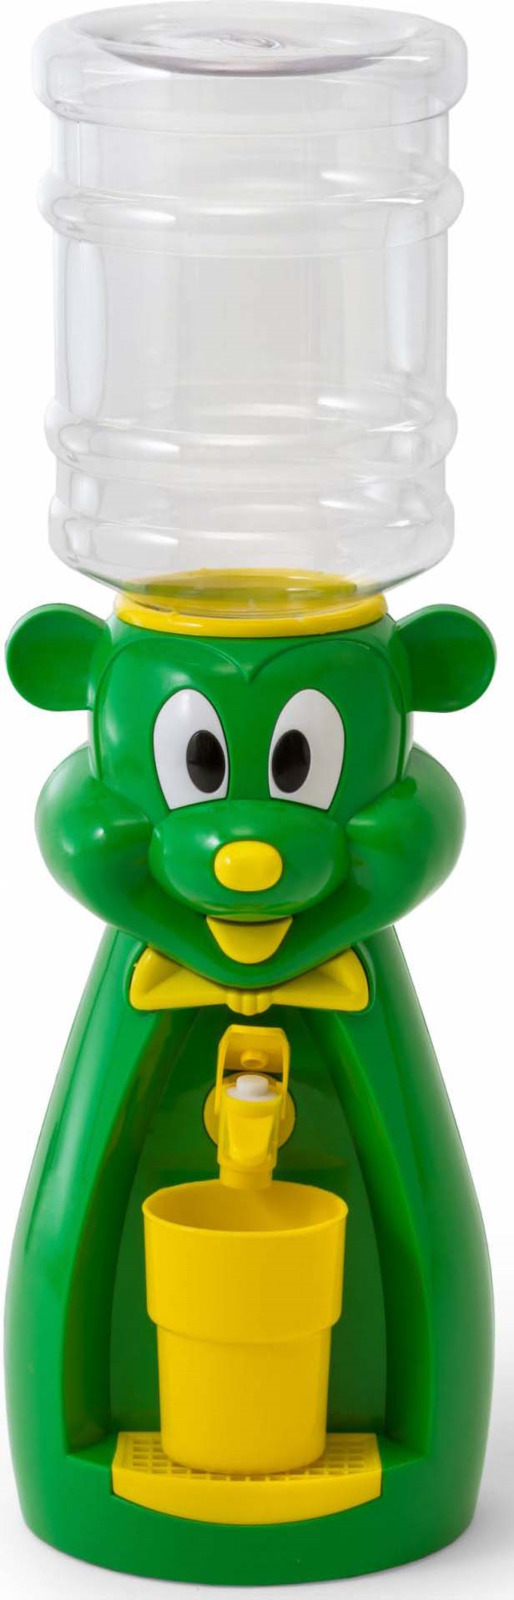 Кулер для воды Vatten Kids Mouse, Green, White кулер для воды vatten kids mouse green red со стаканчиком